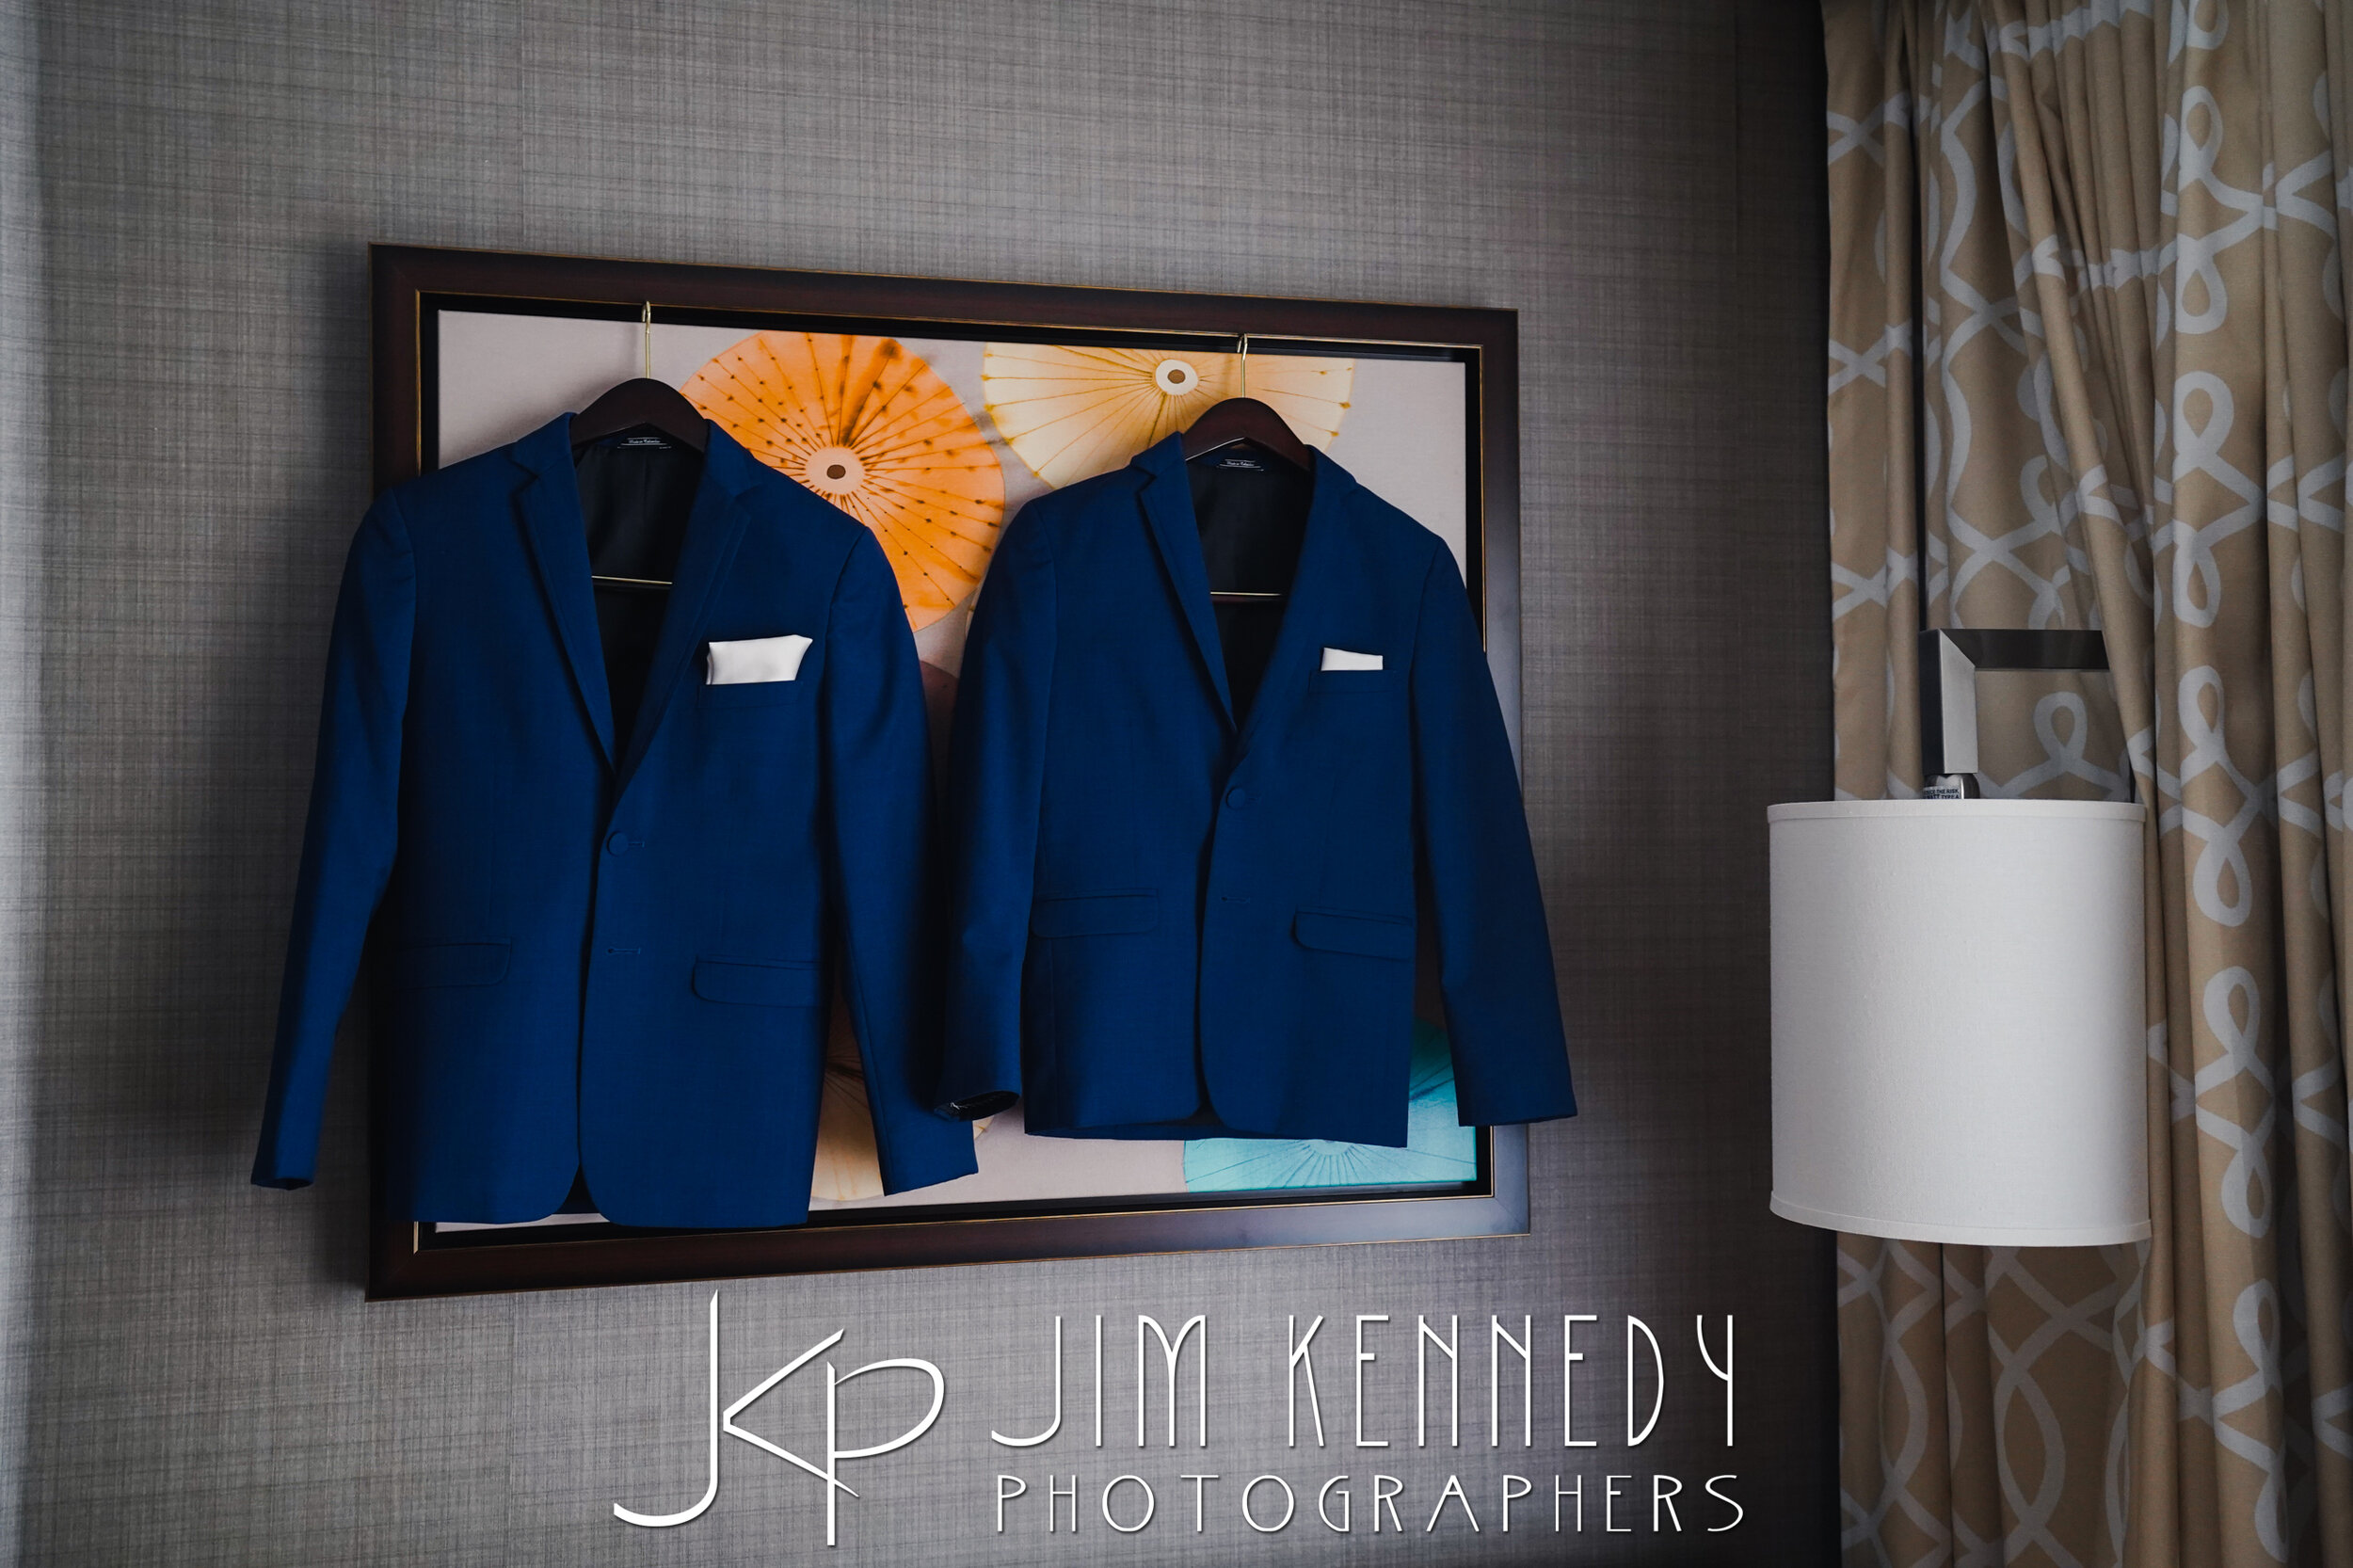 waterfront-hilton-wedding-jim-kennedy-photographers_0020.JPG